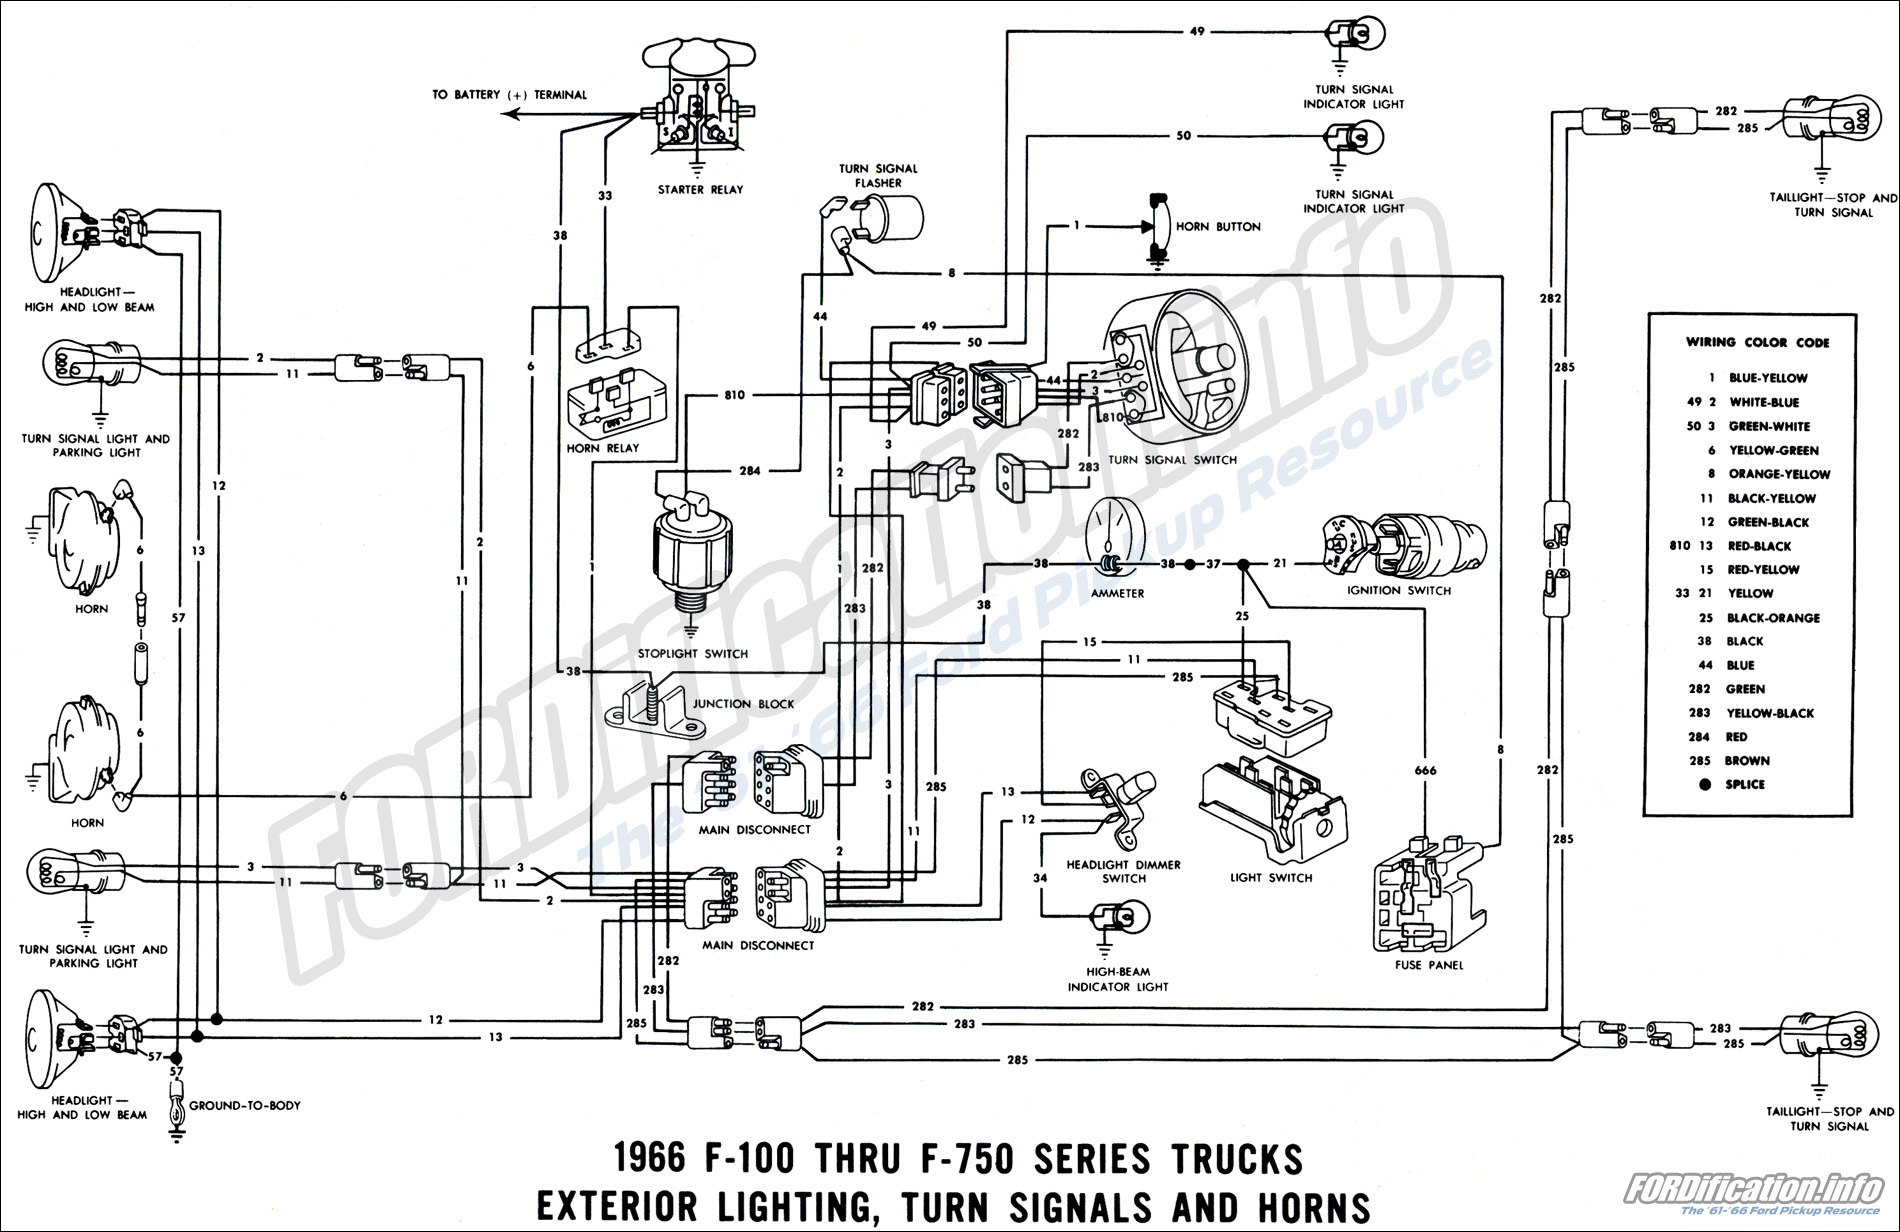 Swell Bronco Turn Signal Flasher Wiring Schematics Wiring Diagram Wiring Cloud Cranvenetmohammedshrineorg